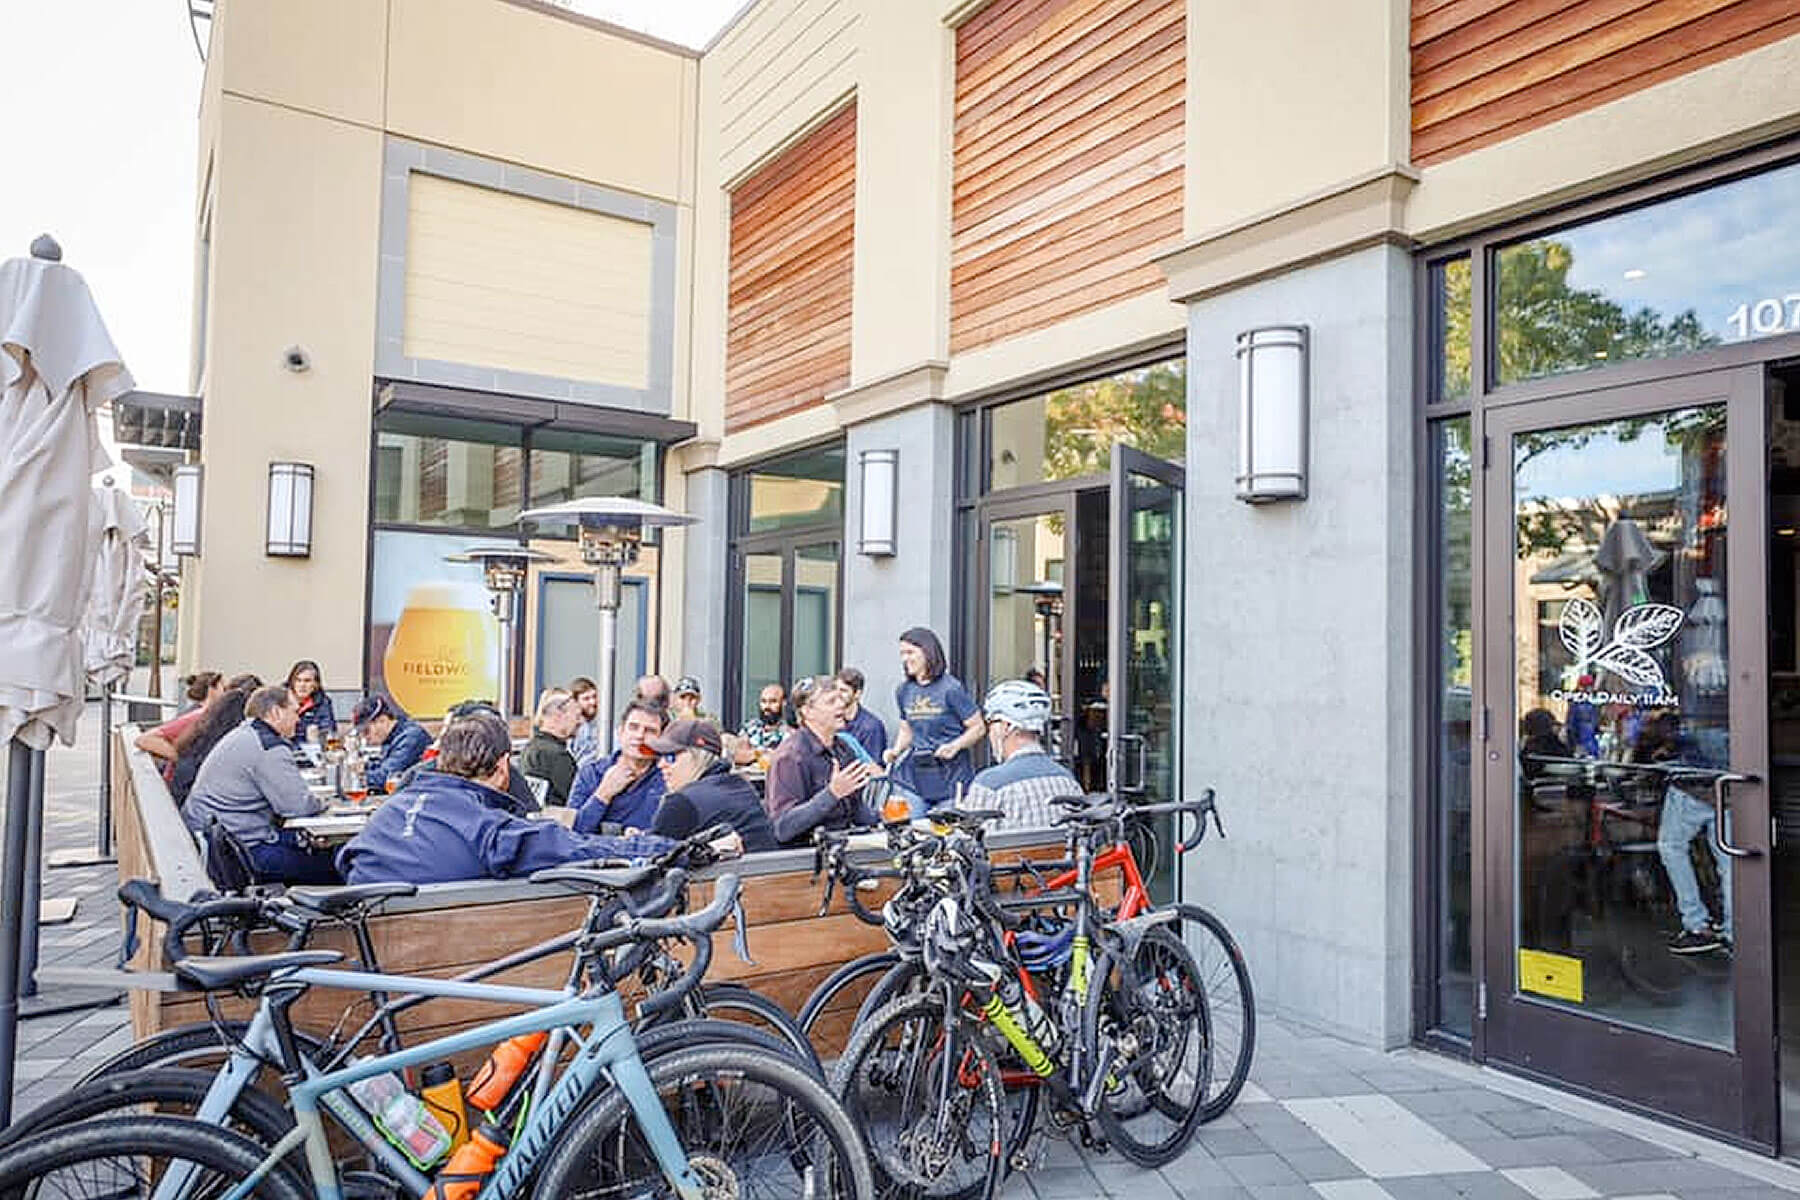 Patrons enjoy food and beer on the patio outside the taproom at Fieldwork Brewing Company in Corte Madera, California